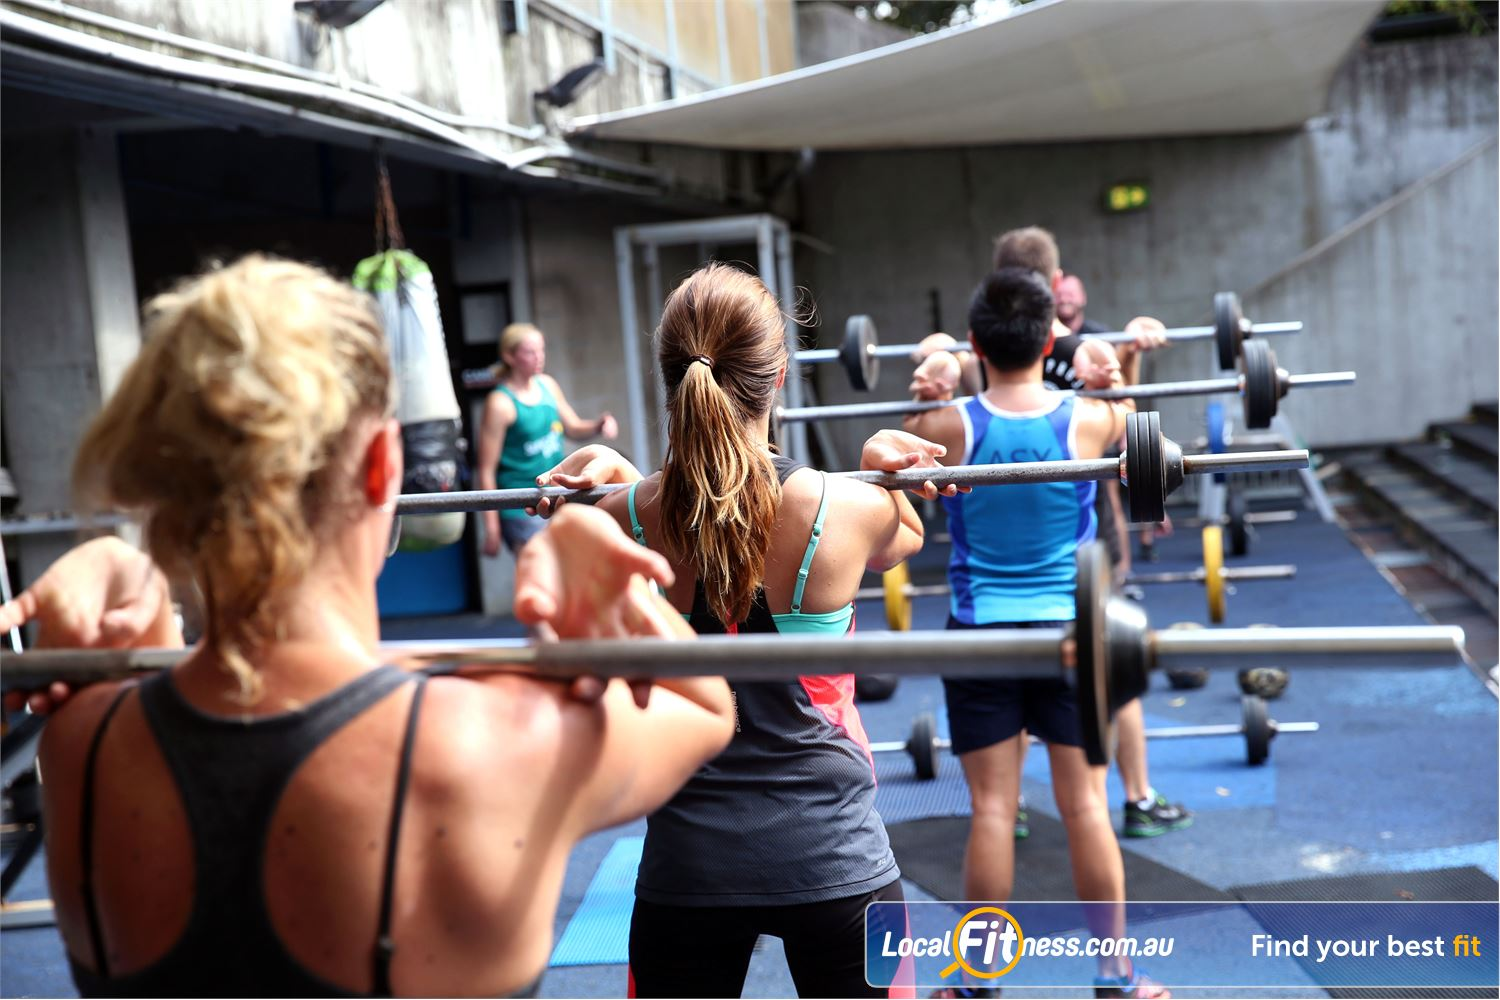 Cook and Phillip Park Aquatic and Fitness Centre Near World Square Group classes inc. Sdyeny Yoga, Pilates, HIIT, Spin and more.